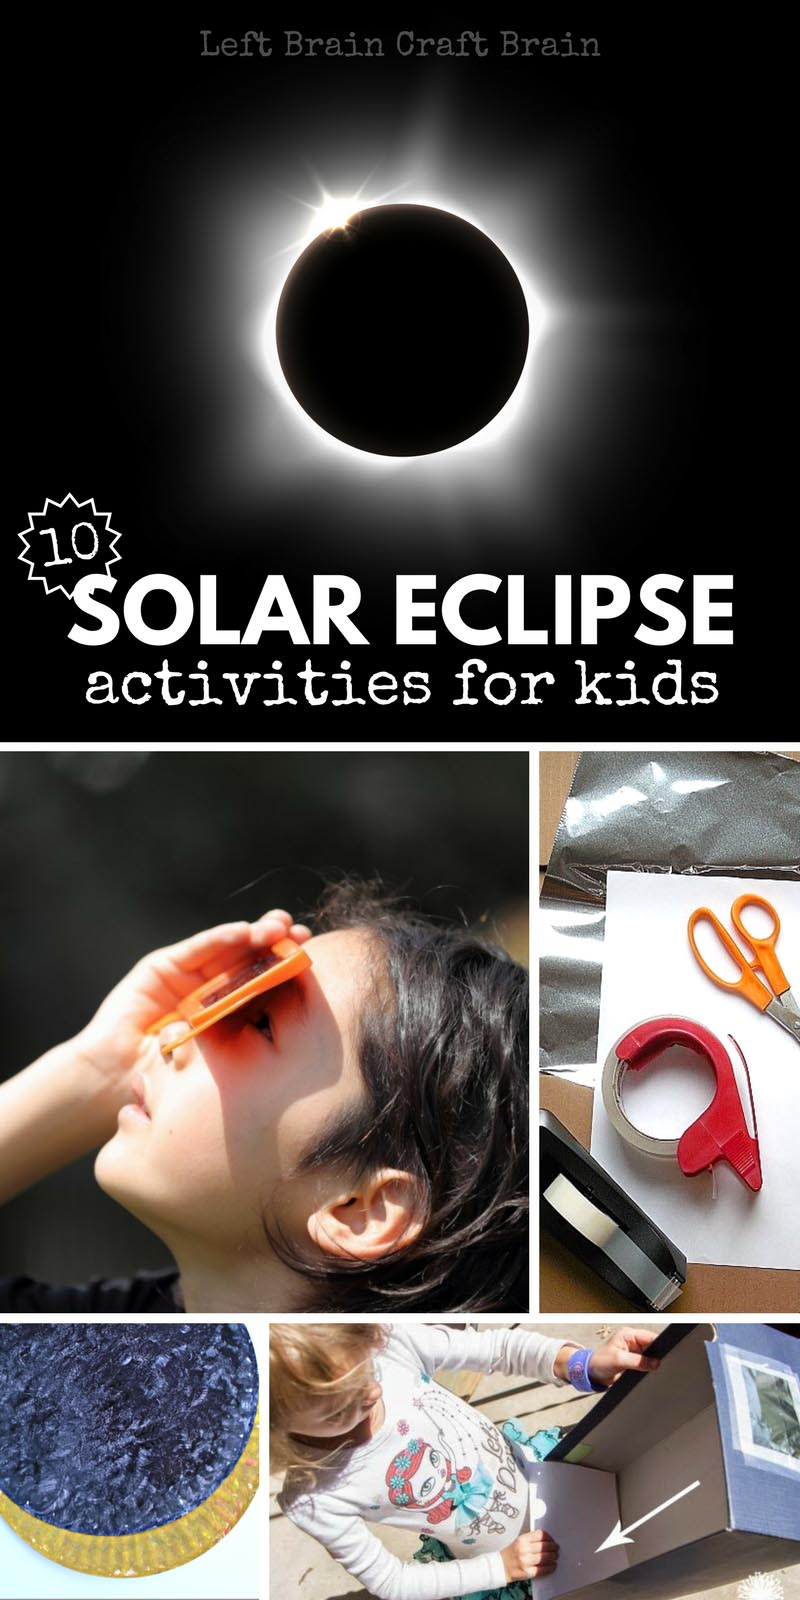 photograph about Printable Solar Eclipse Glasses known as 10 Sunshine Eclipse Routines for Small children - Remaining Intellect Craft Mind